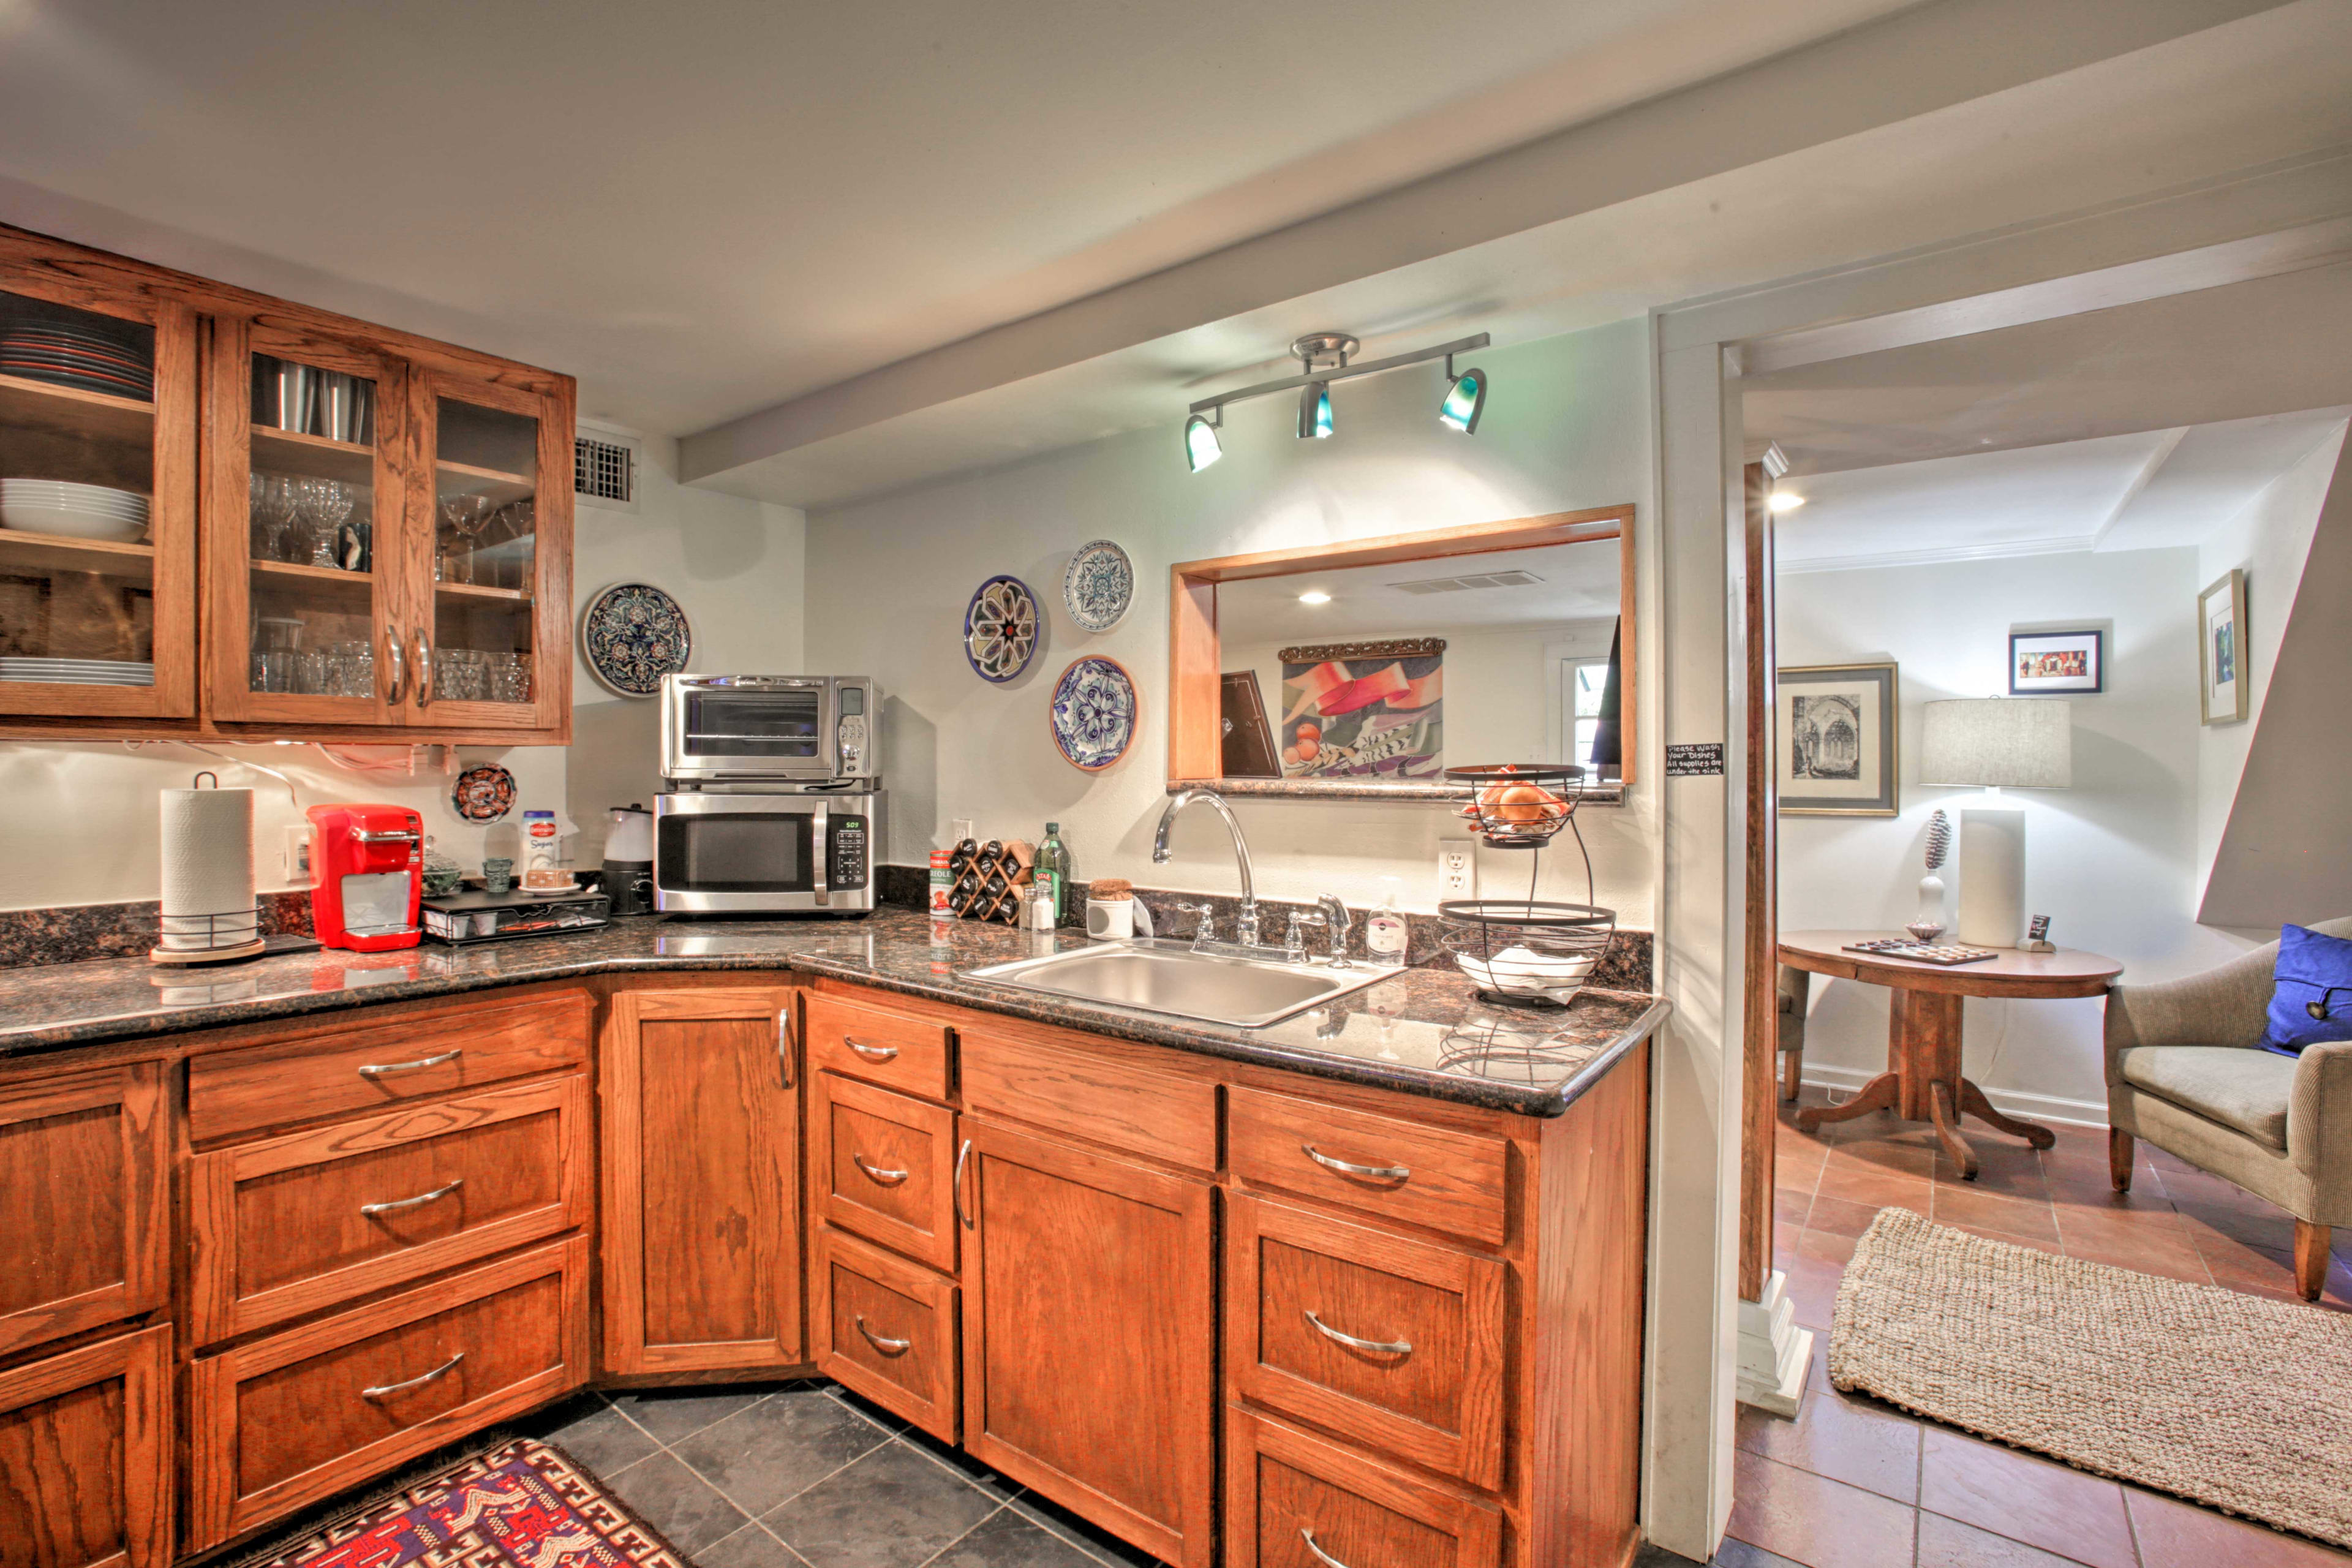 The kitchenette offers a microwave, toaster oven, and a Keurig.